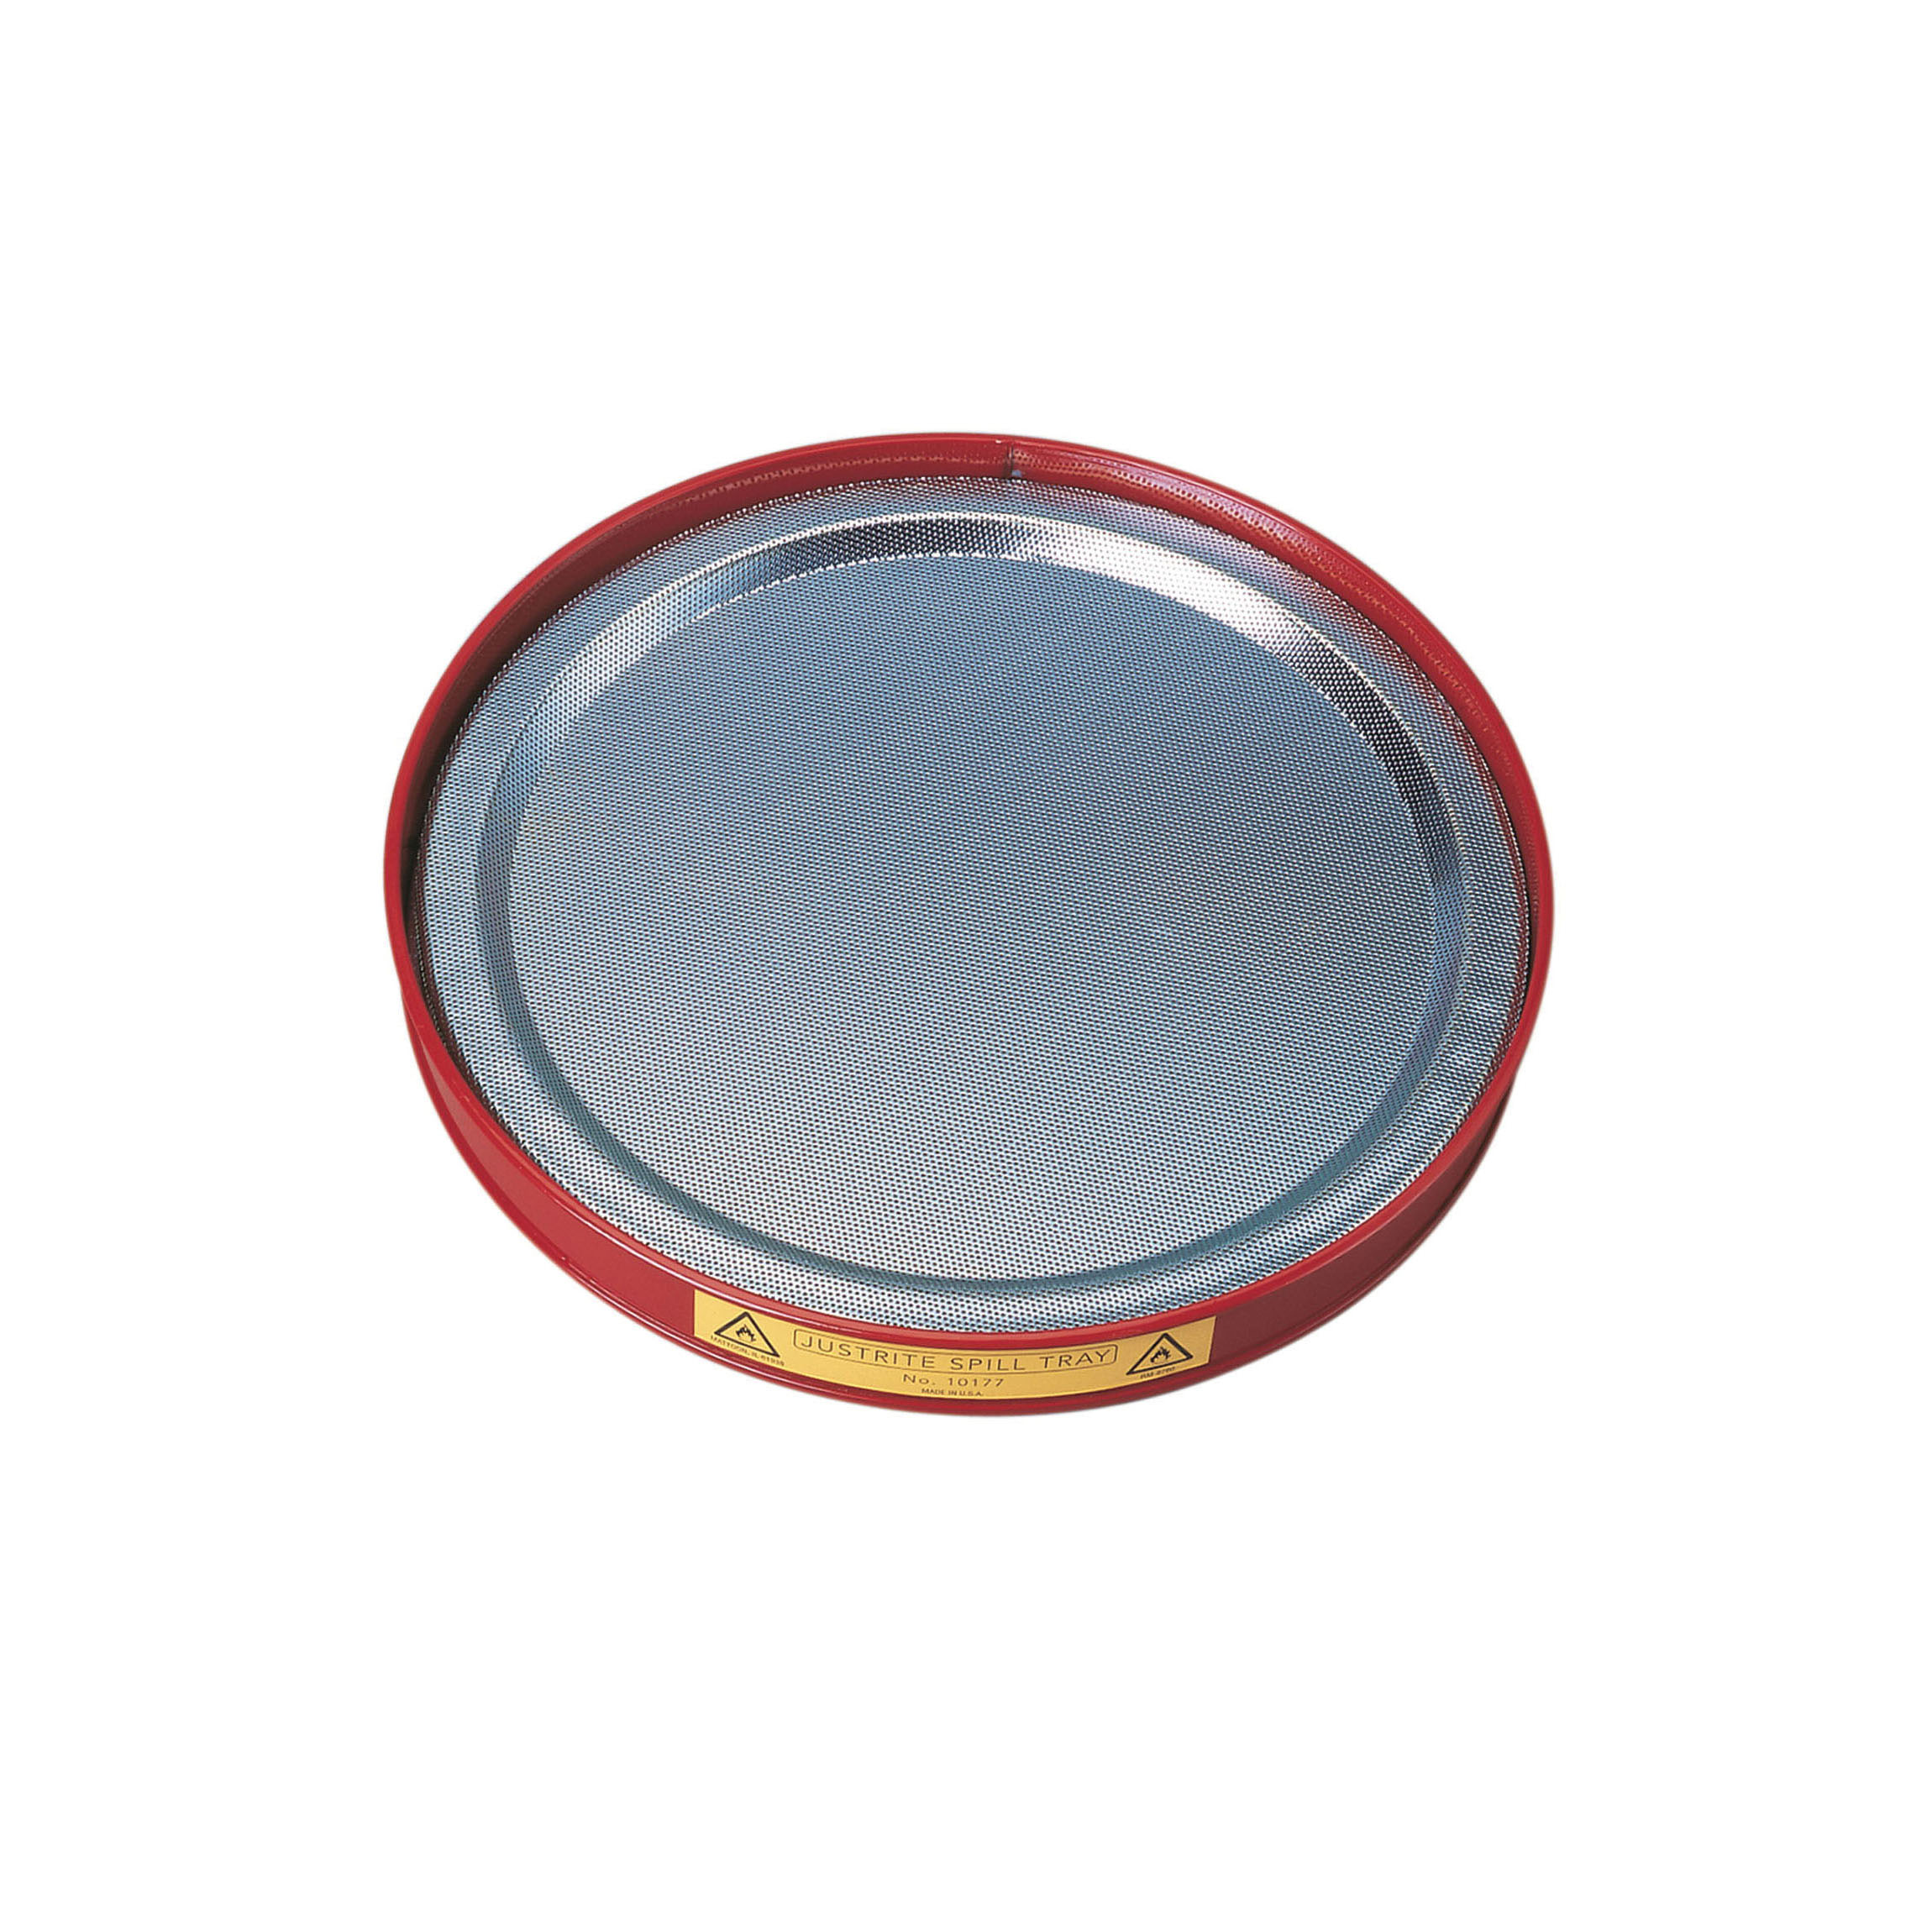 Justrite® 10177 Spill Tray, 24 ga Coated Steel, Red, 1 qt Spill